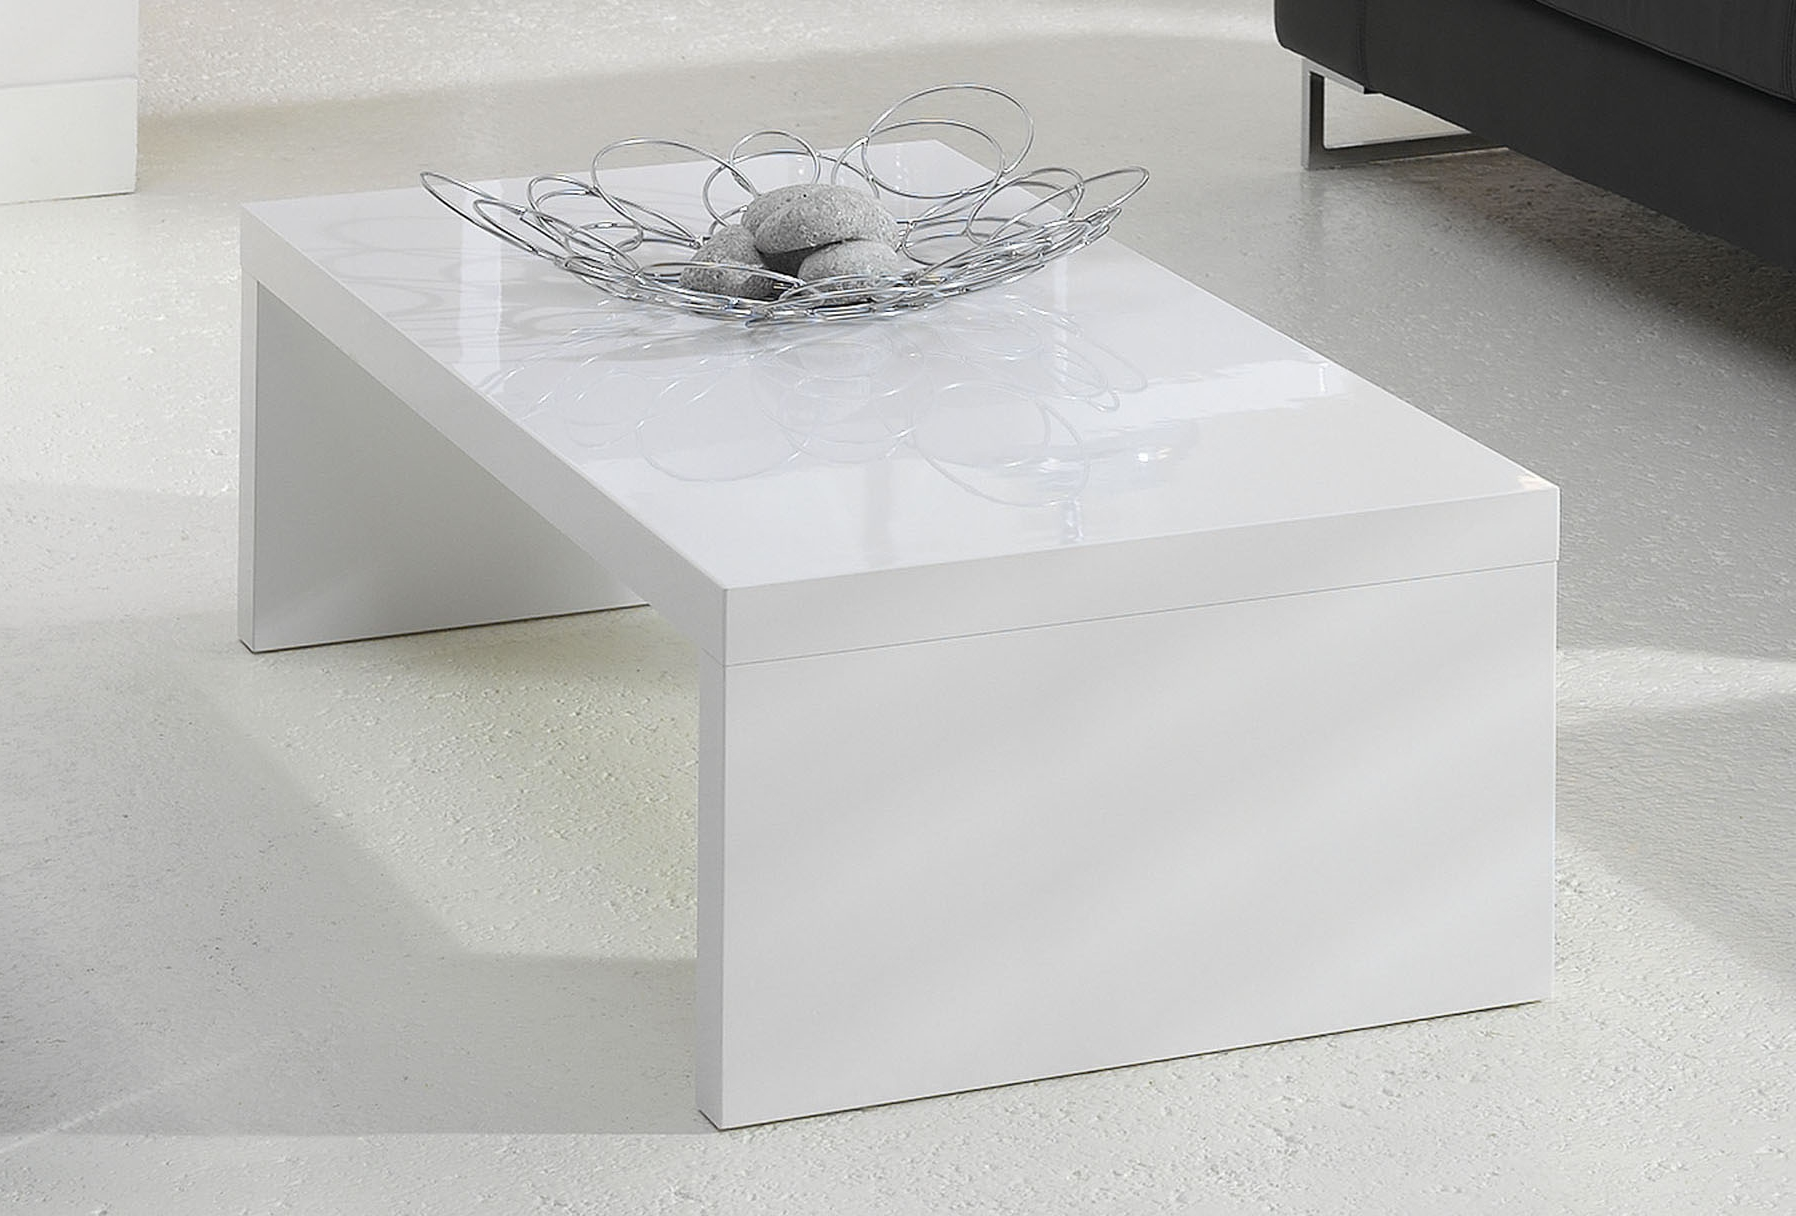 Table Basse Laquee Blanc Table Basse Laquee Blanche